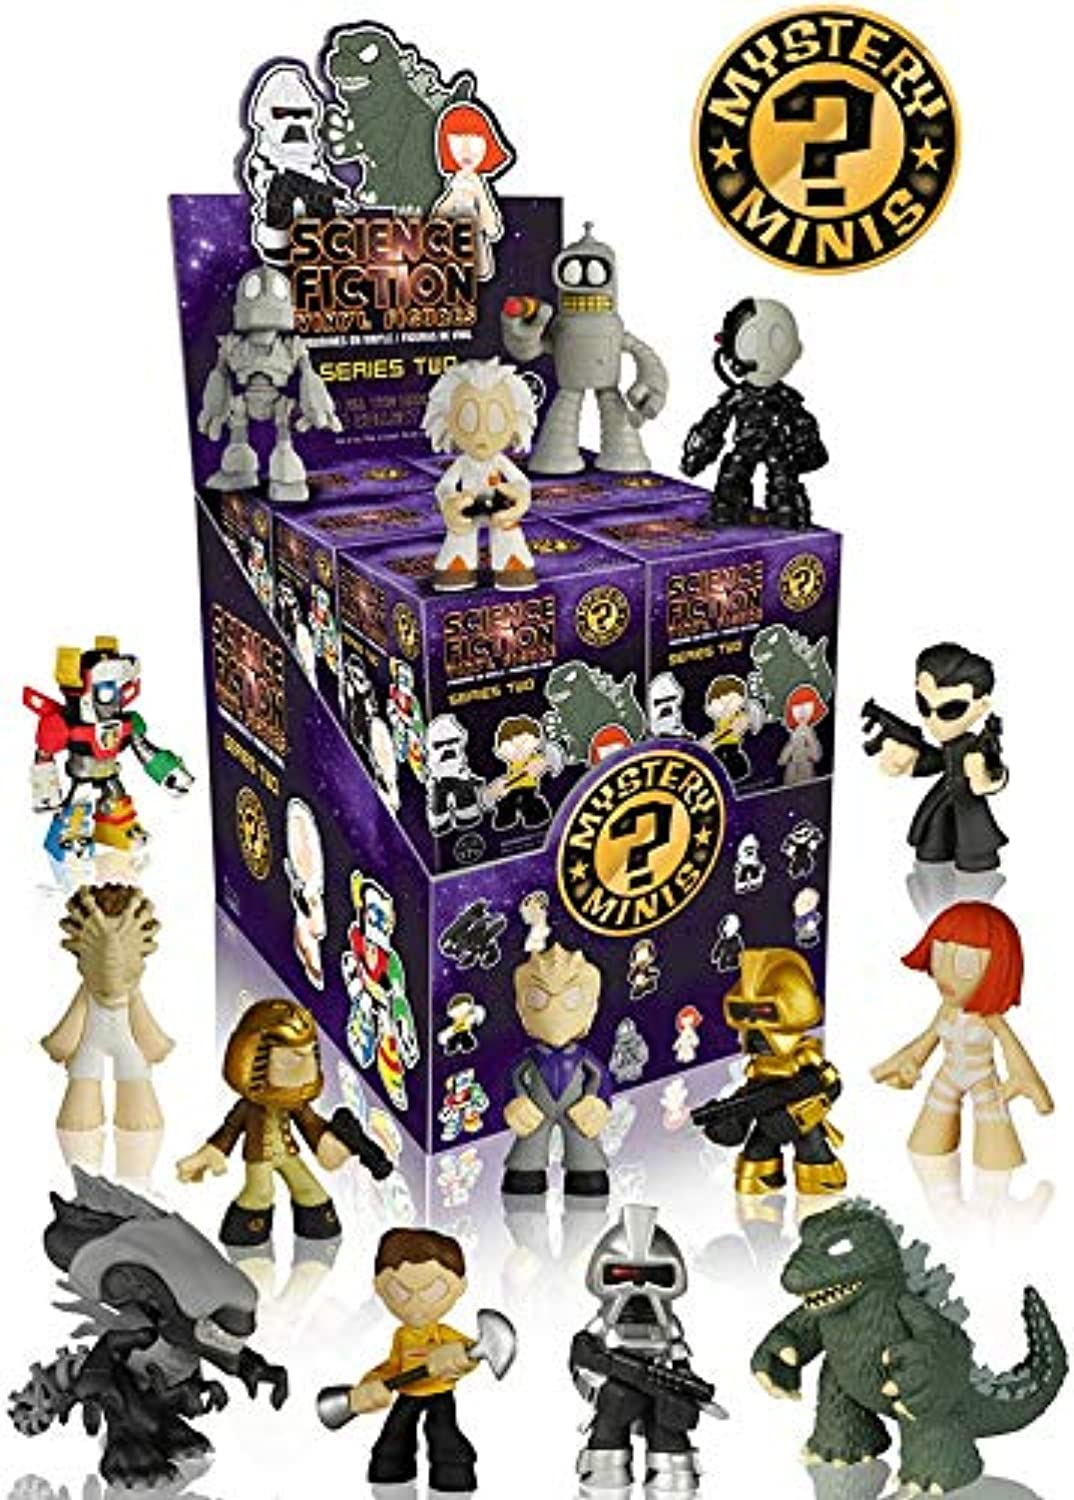 Sci-Fi Mystery Minis Series 2 Vinyl Figure Display Case by Sci-Fi Mystery Minis